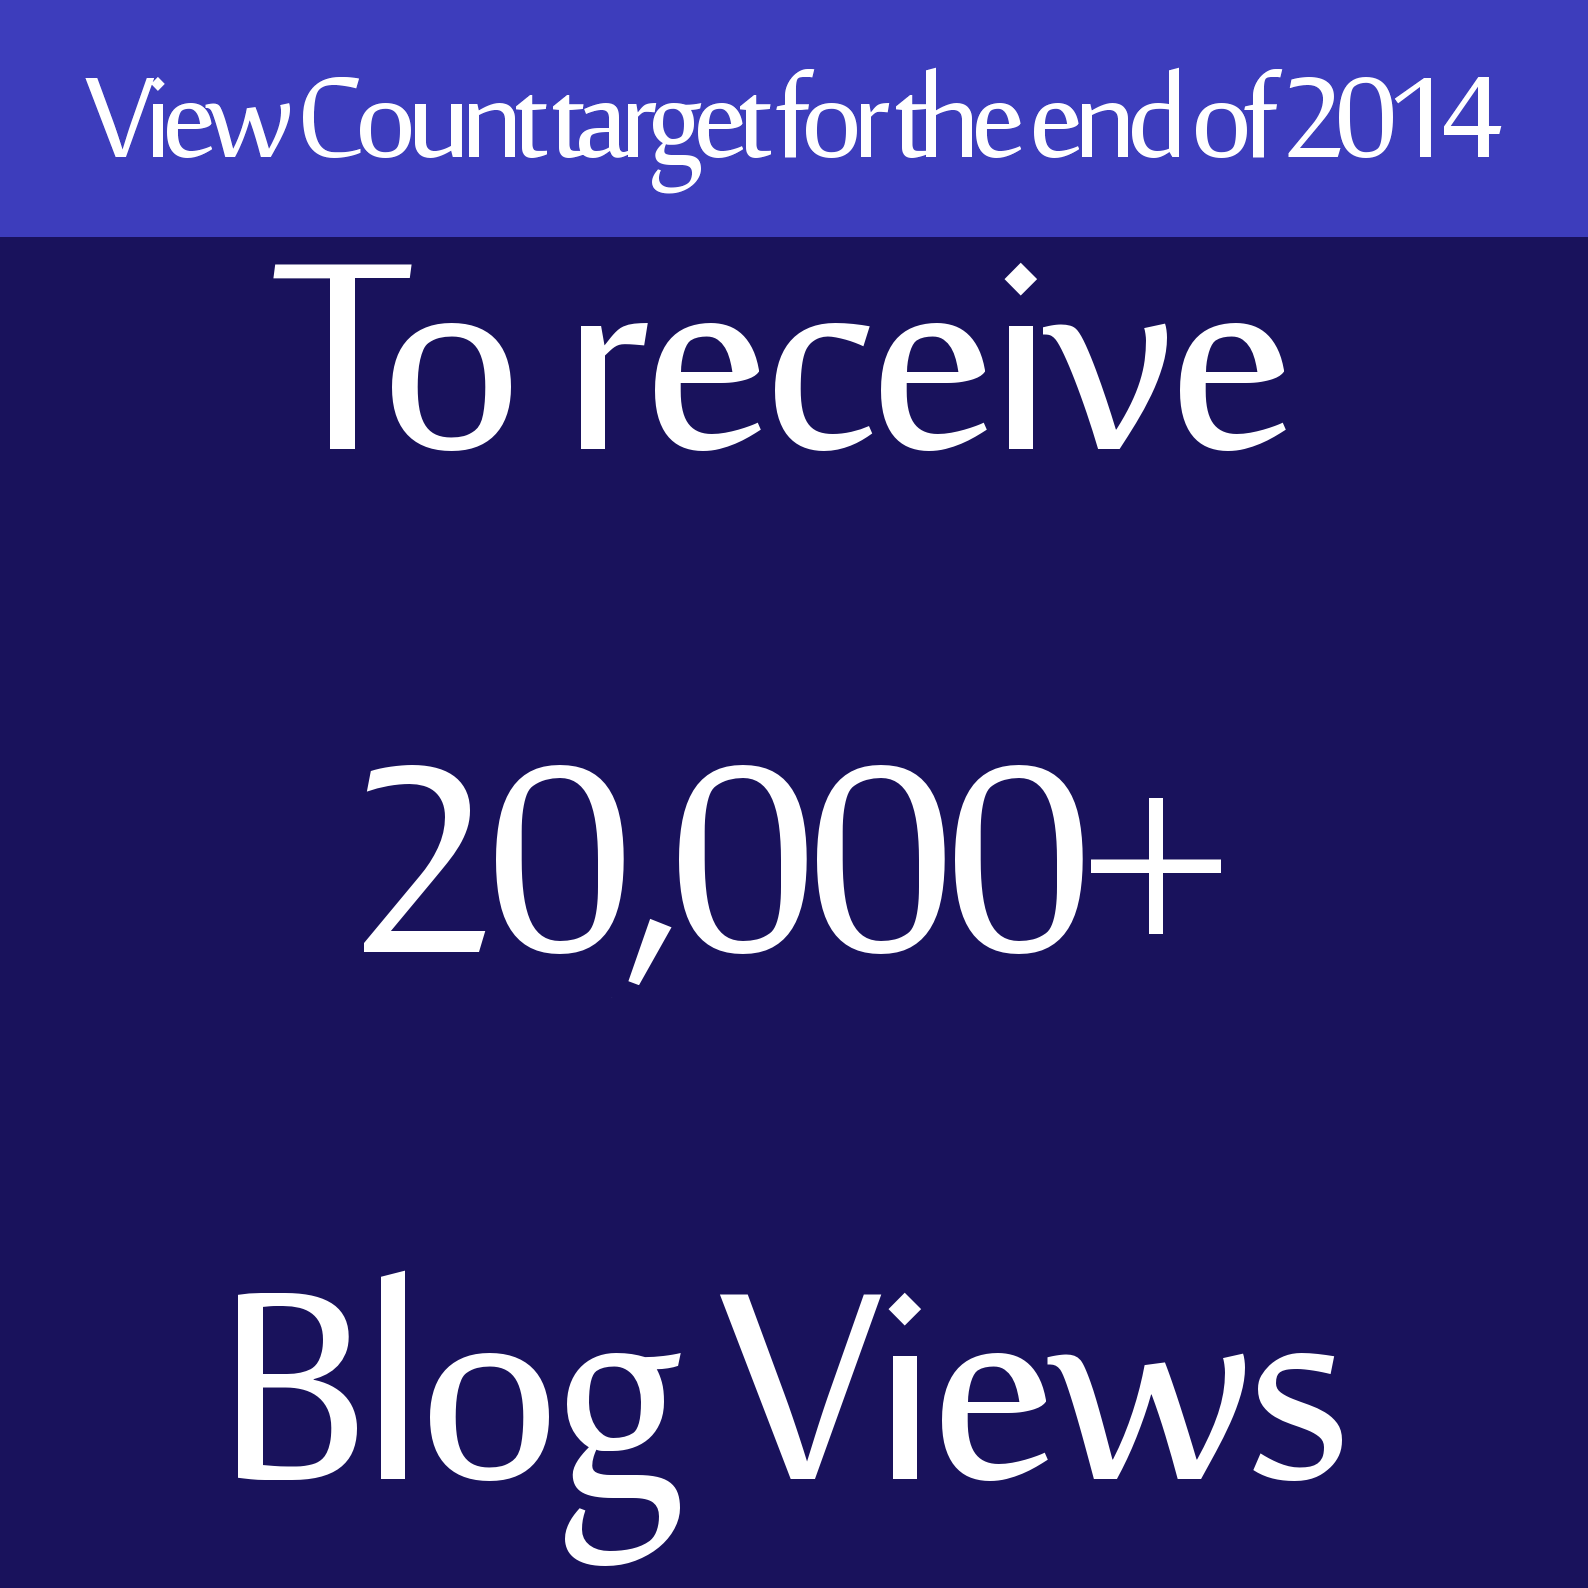 View Count target for the end of 2014